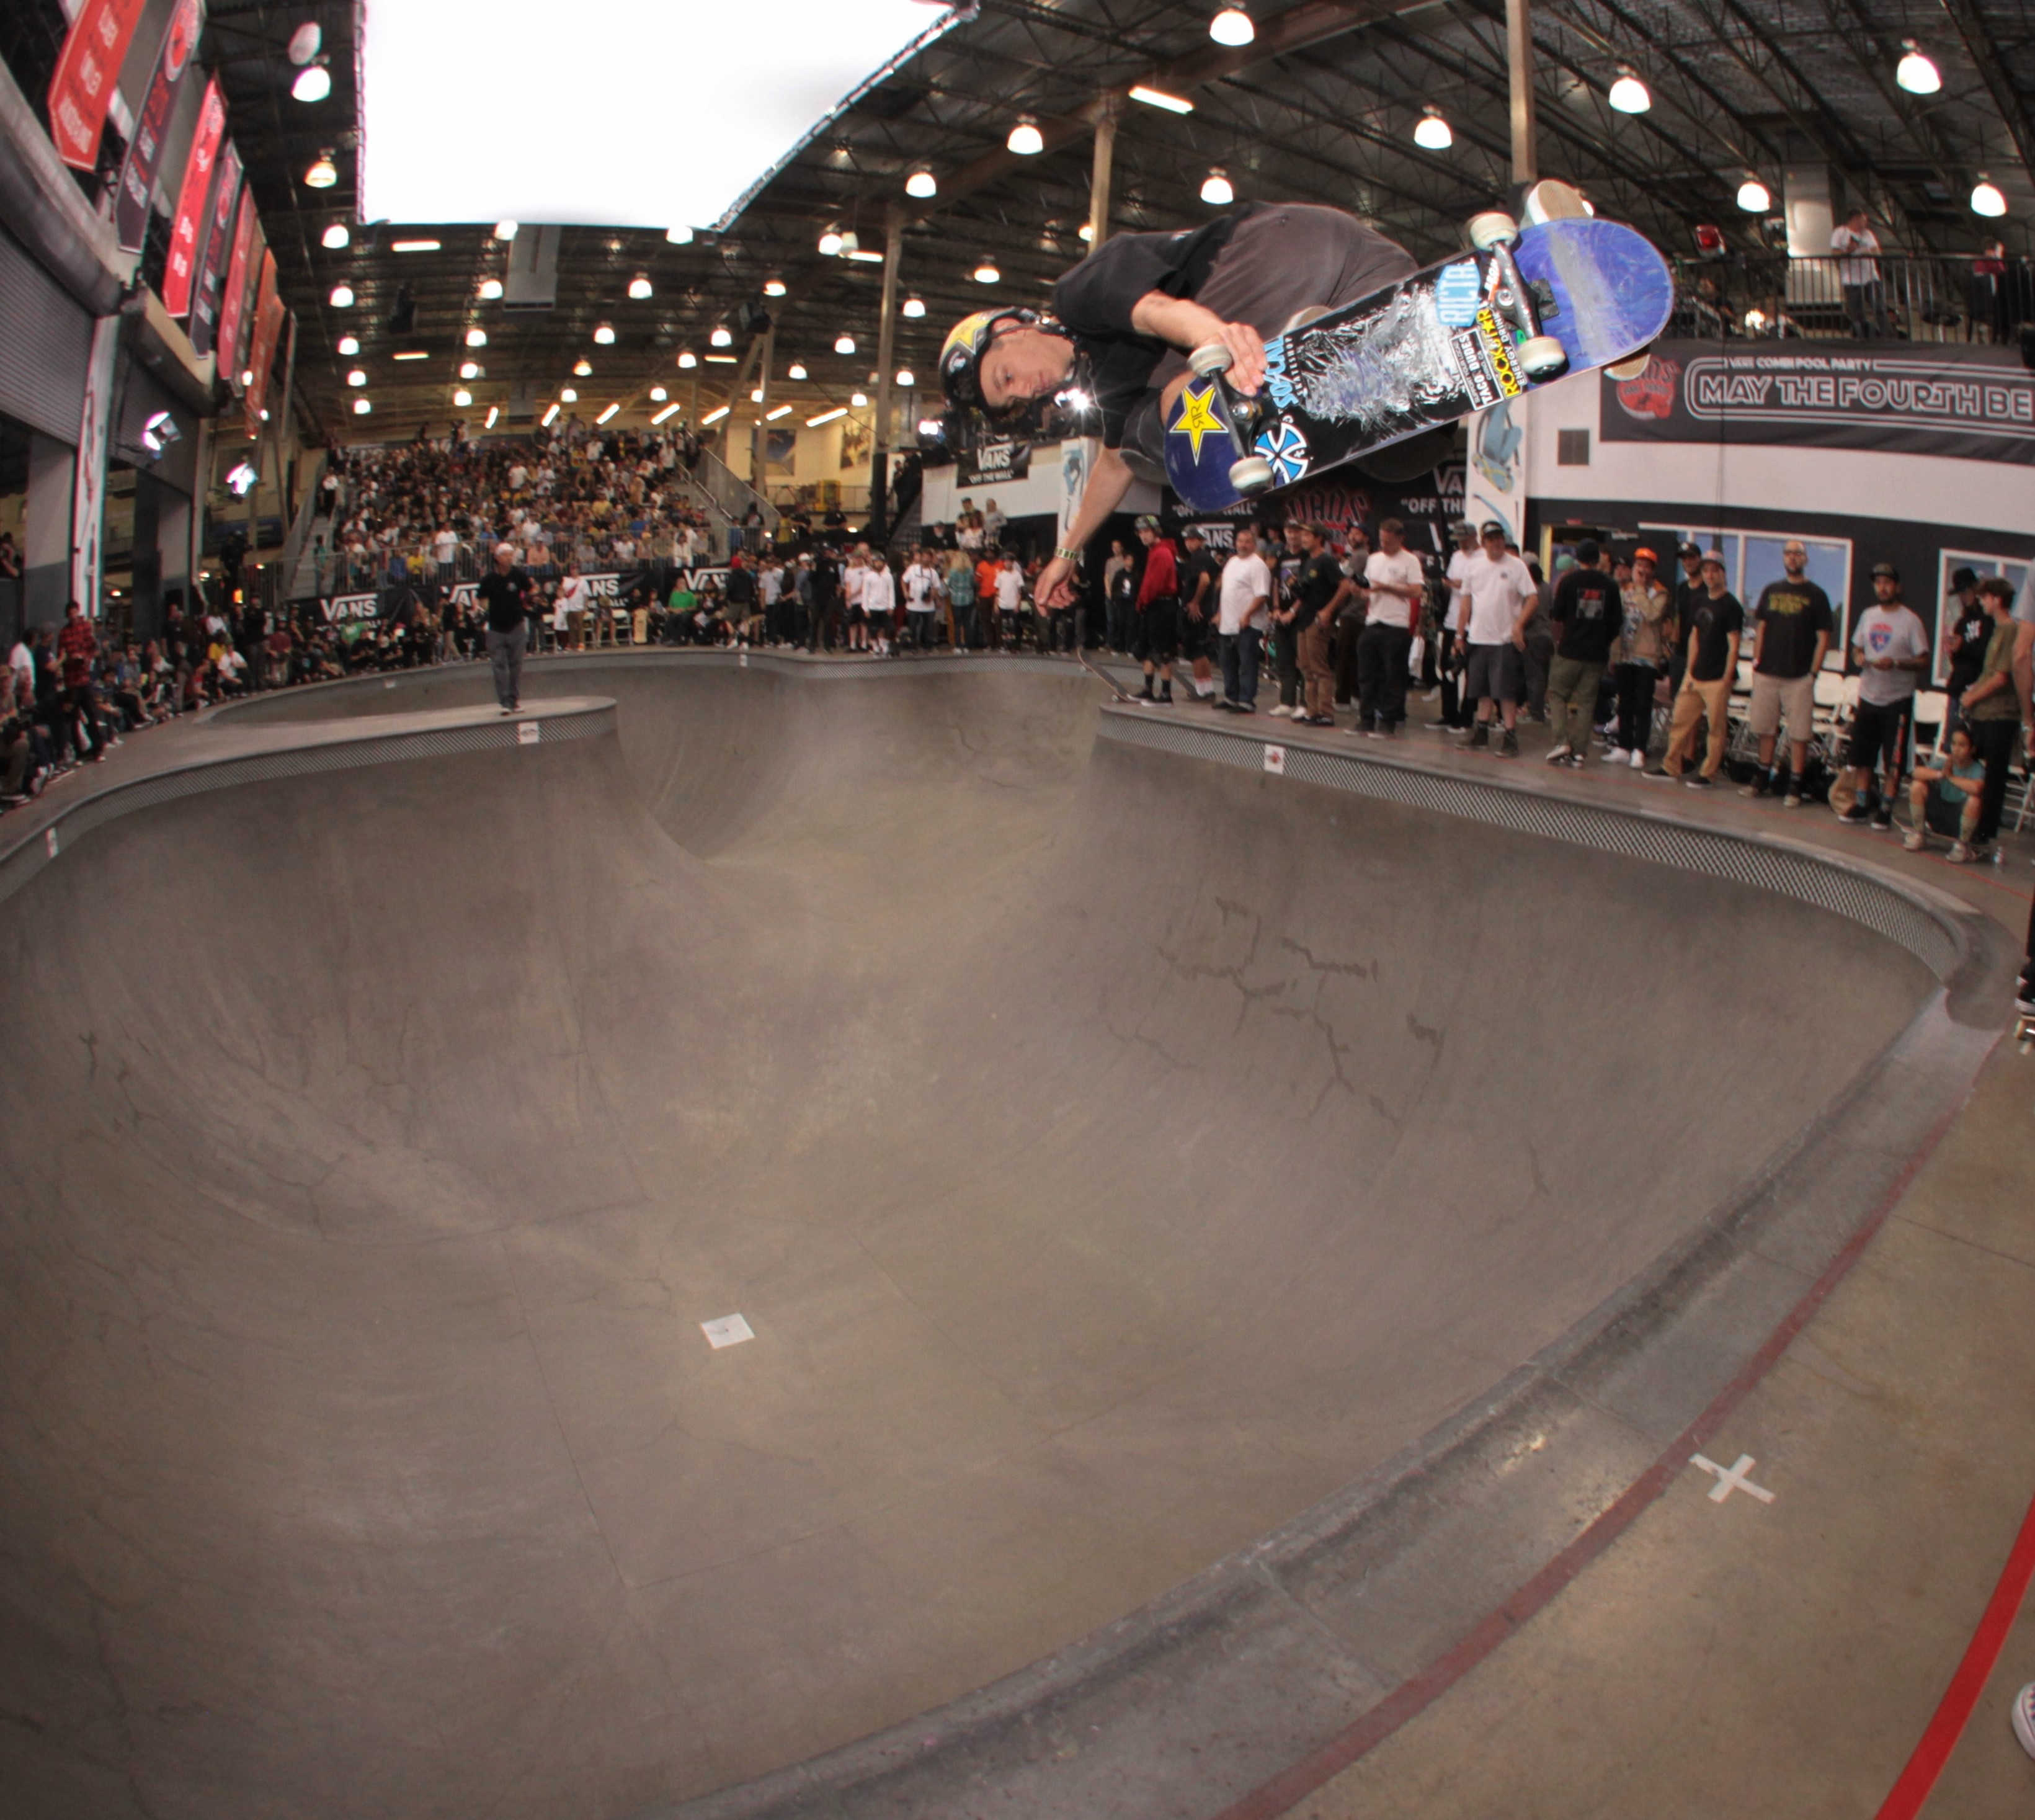 Tristan Rennie at a skateboarding competition